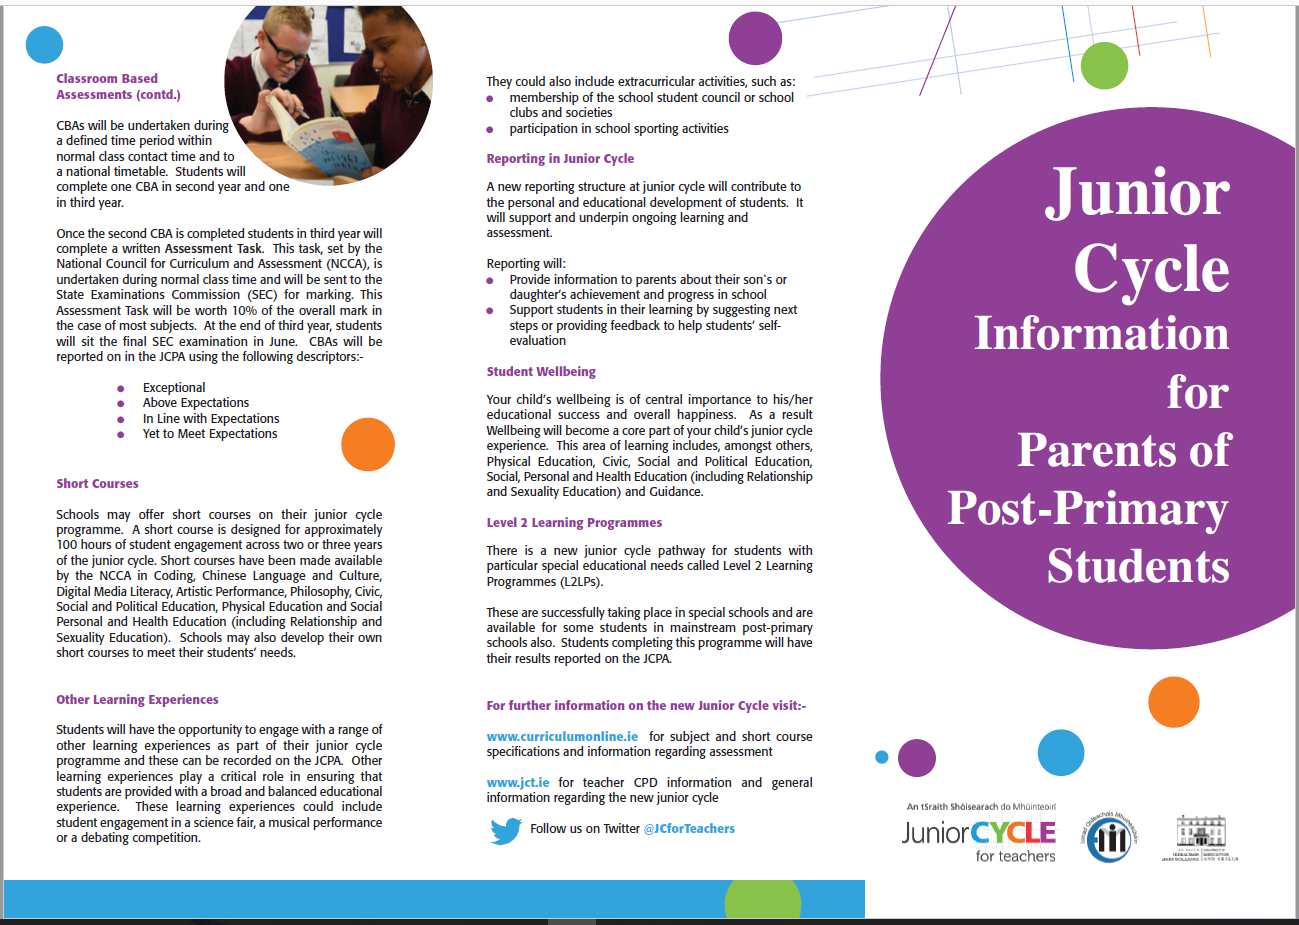 cypop parents leaflet Pacey is the professional association for childcare and early years formed in 1977, we are a charity dedicated to supporting everyone working in childcare and early years to provide high quality care and early learning for children and families.